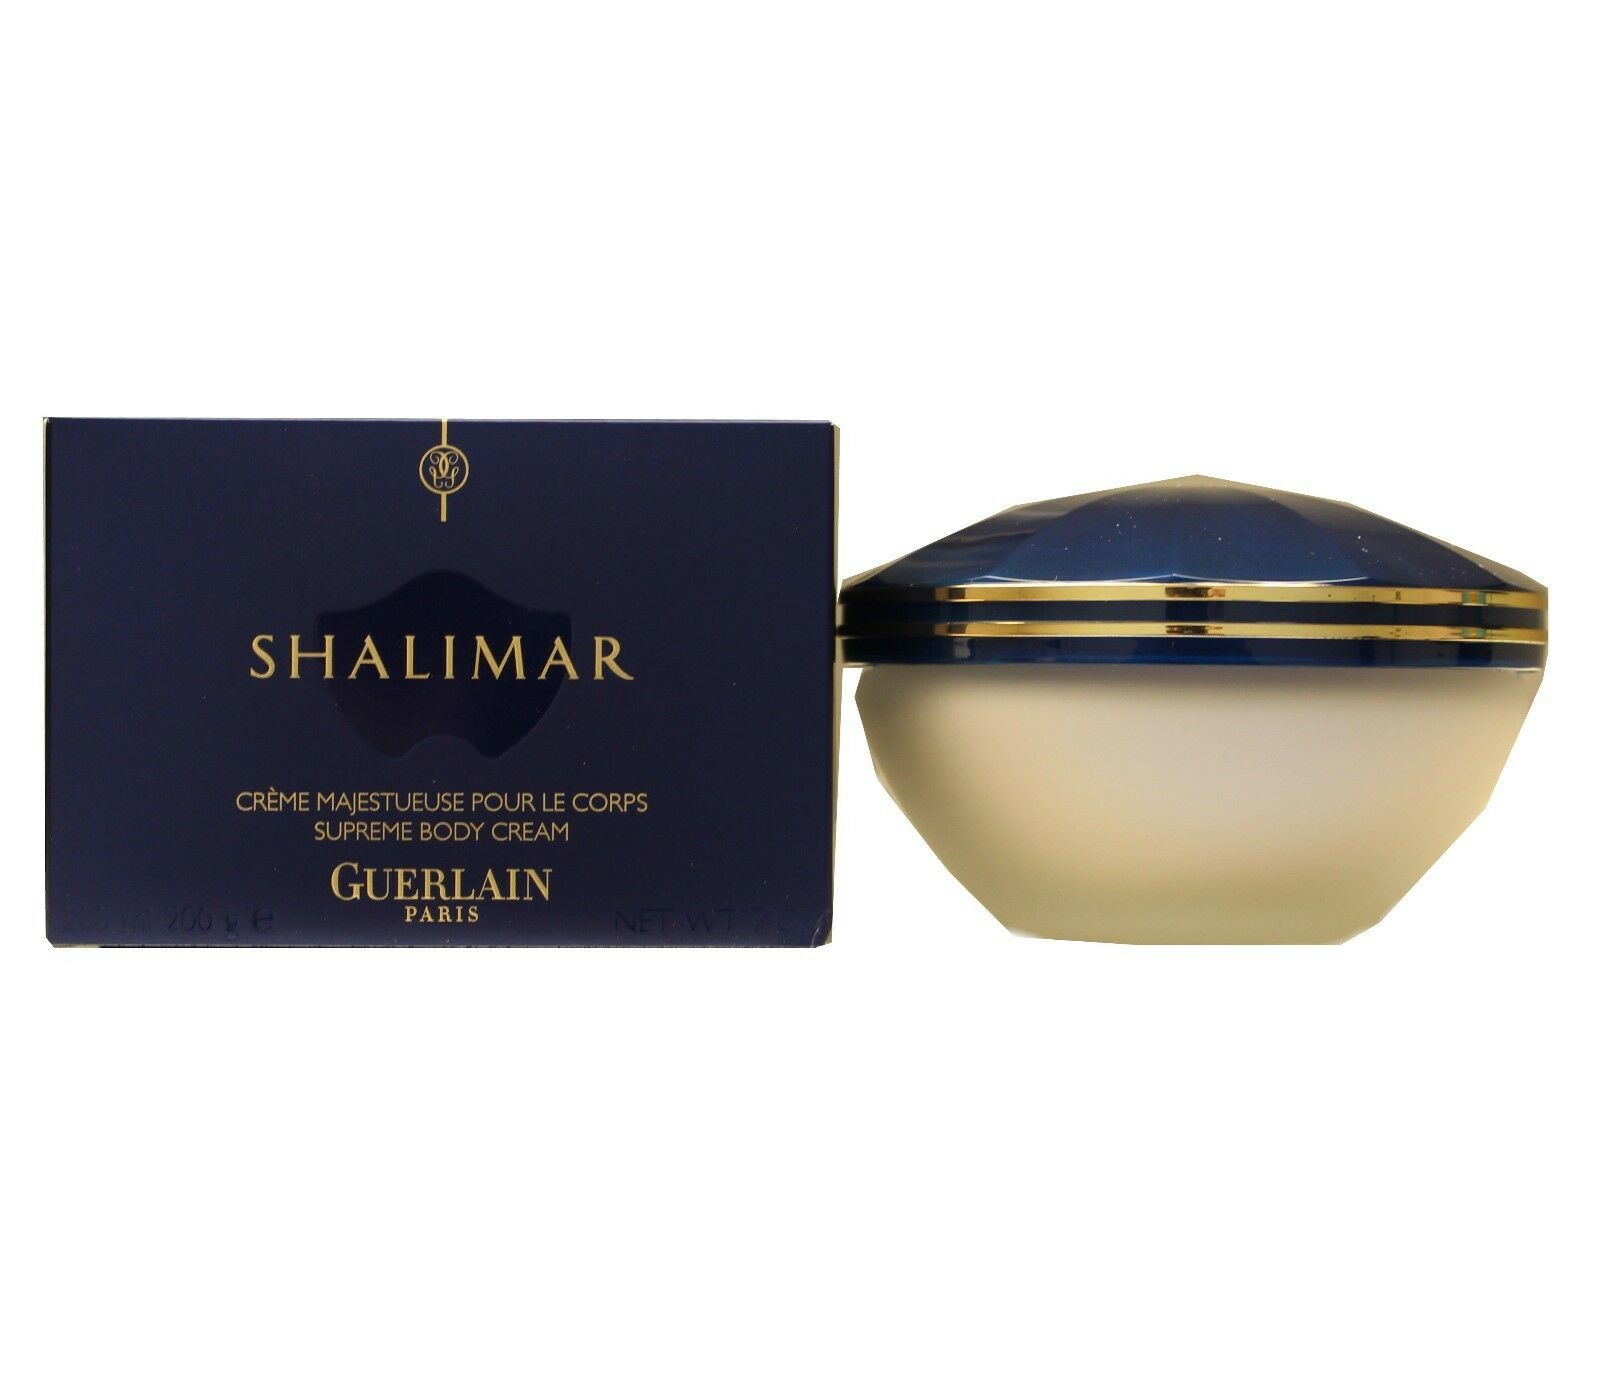 GUERLAIN SHALIMAR SUPREME BODY CREAM 200 ML/7 OZ. NIB